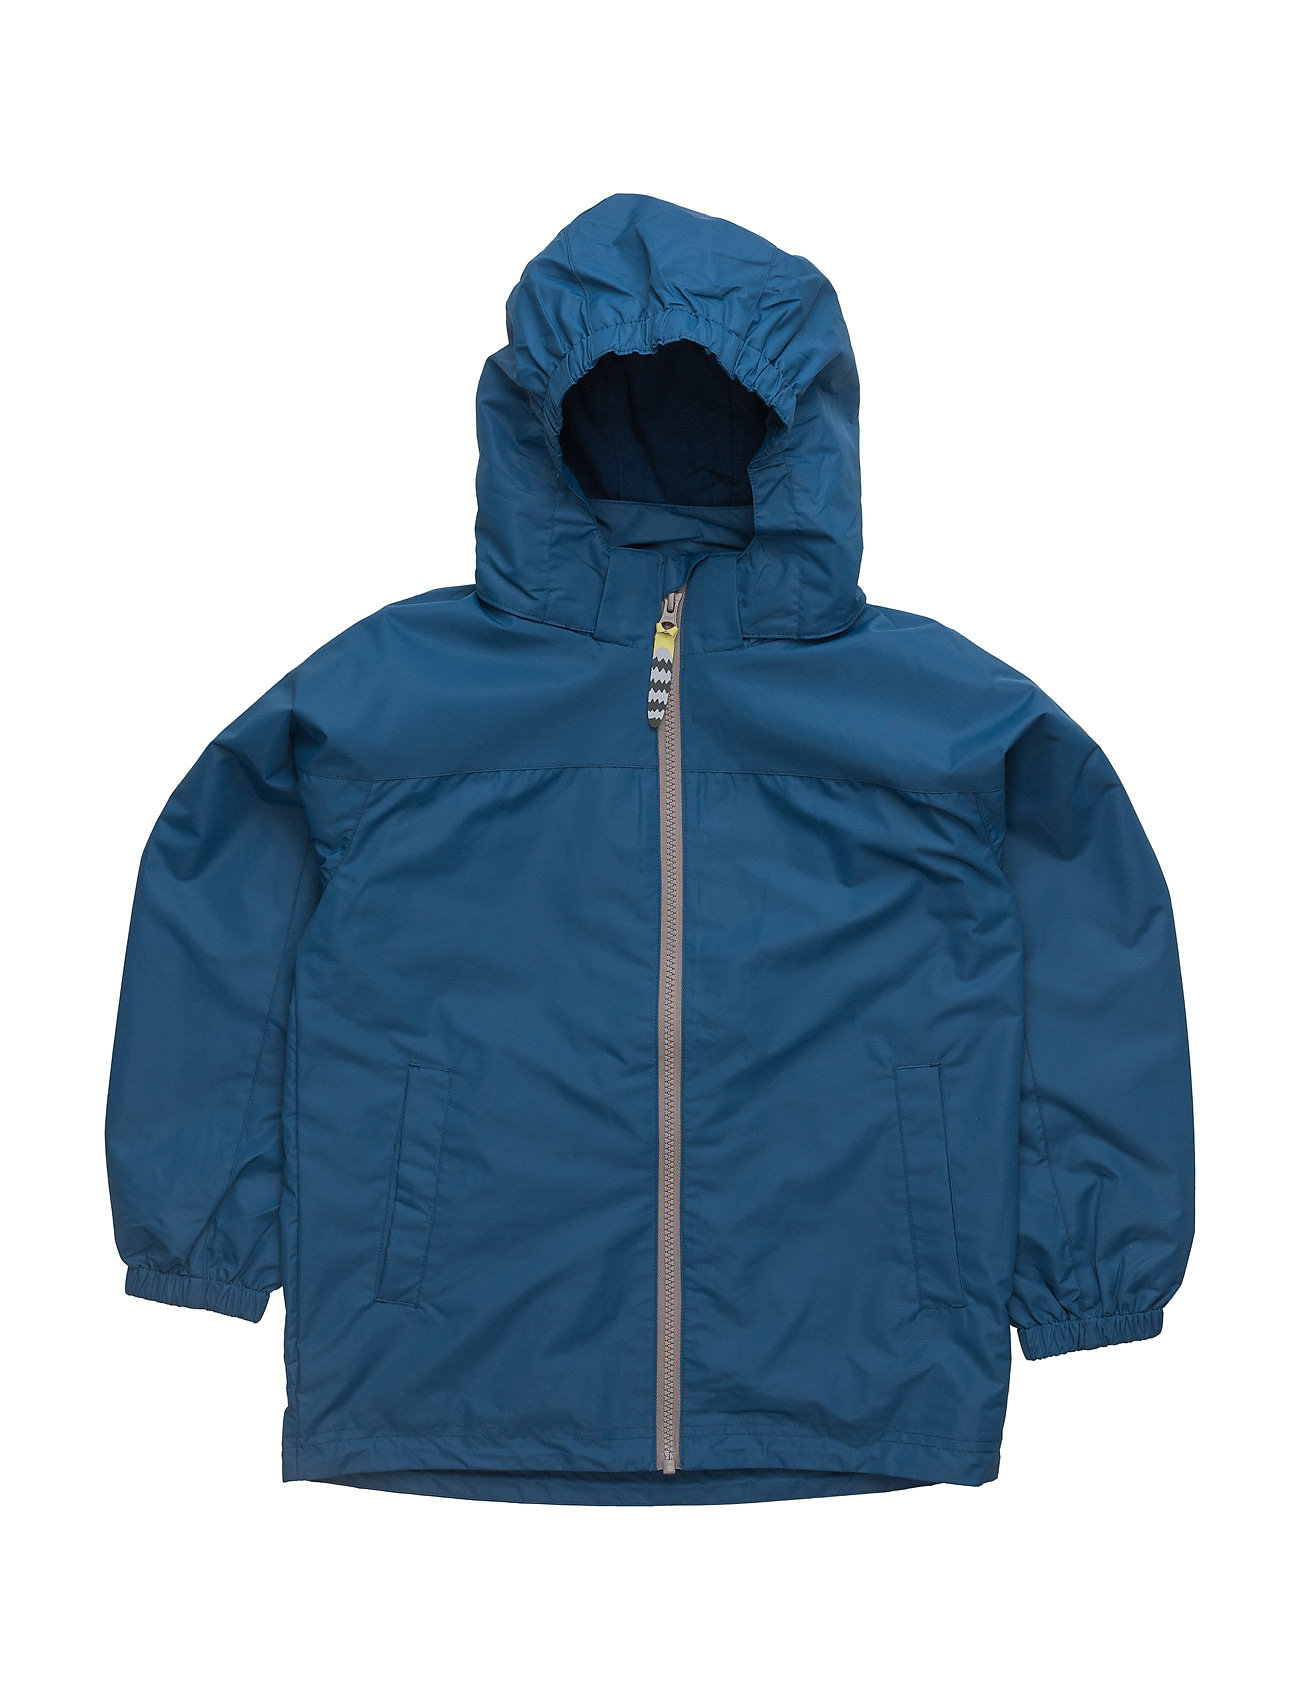 racoon outdoor – Curt solid fra boozt.com dk